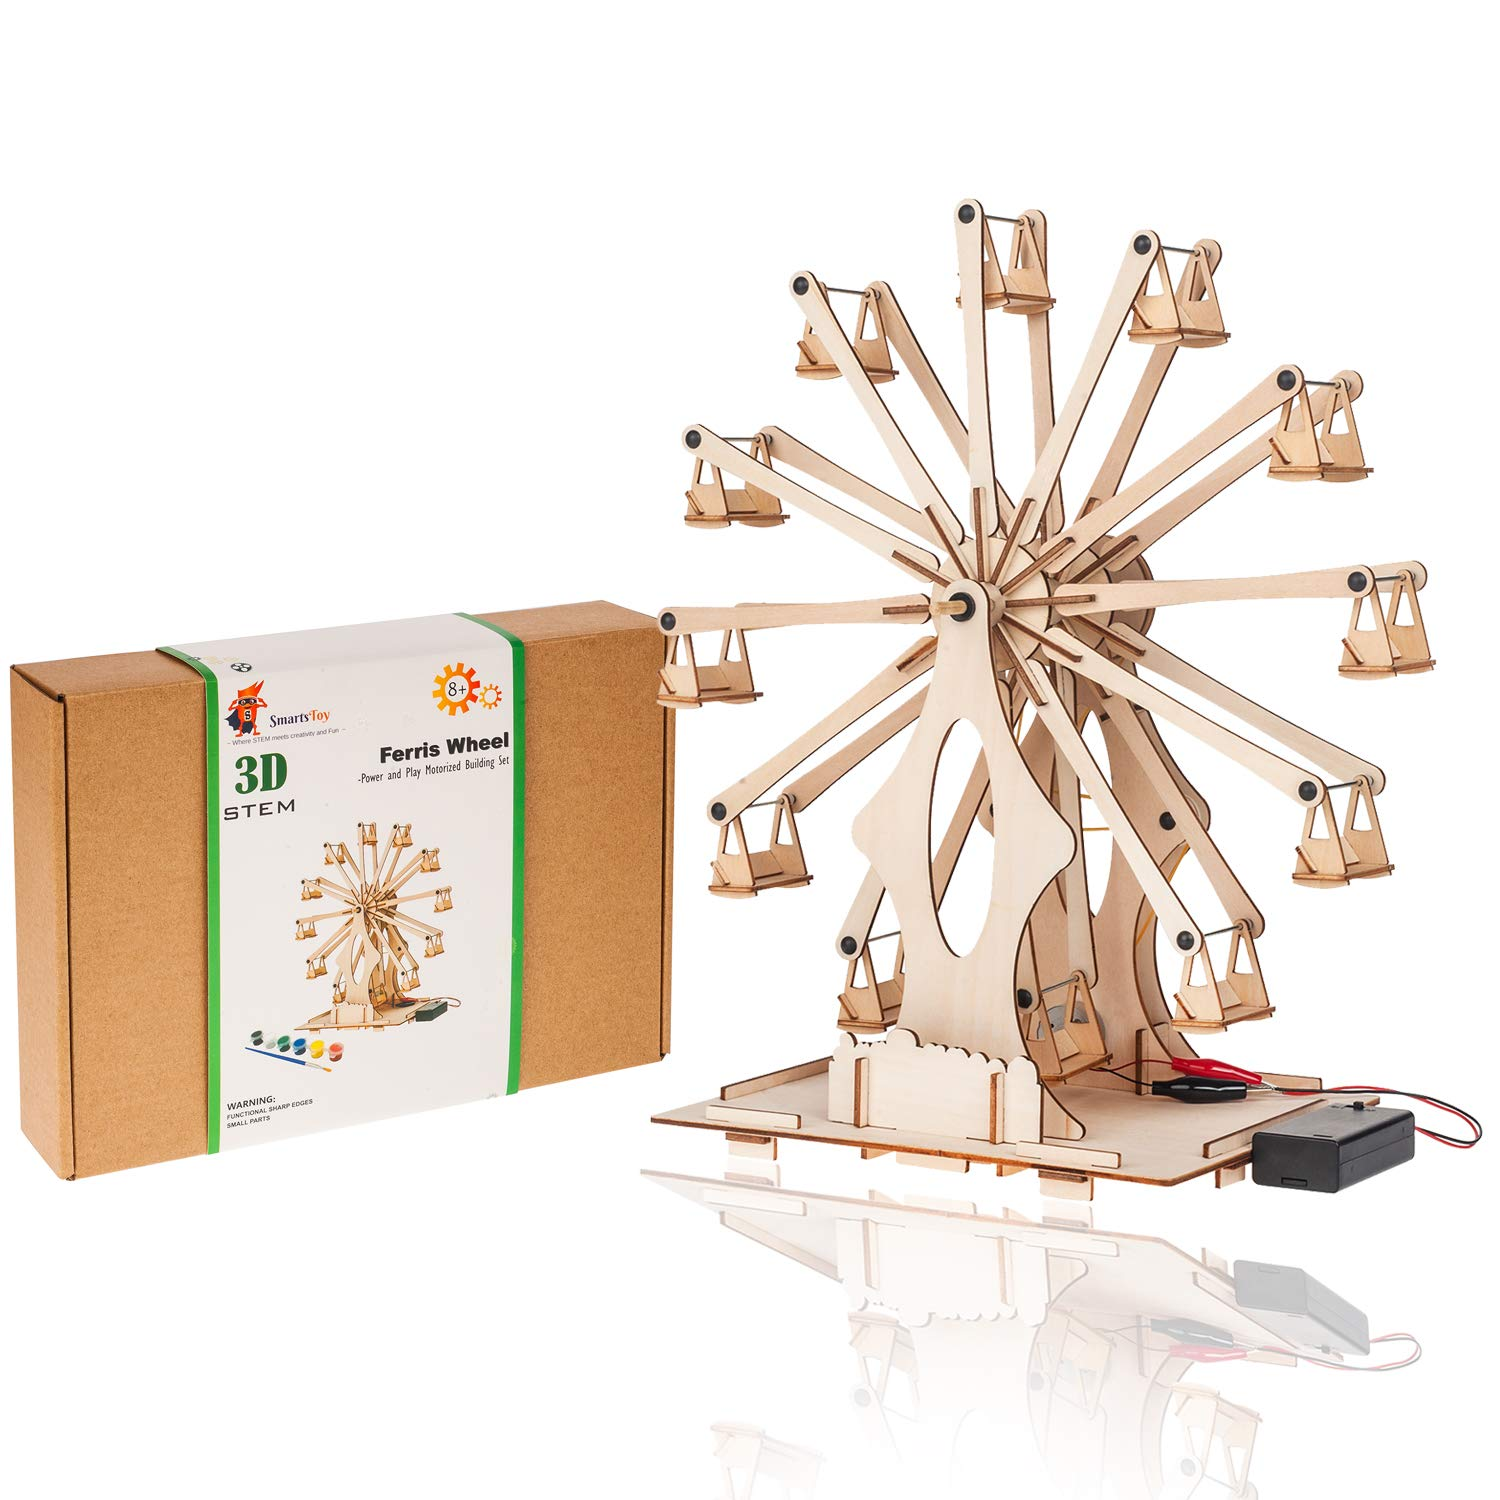 Wooden Ferris Wheel Building Kit | Educational DIY STEM Toys for Boys and Girls | 3D Working Construction Model Kits | Science Kits for Kids, Teens & Adults by Smartstoy